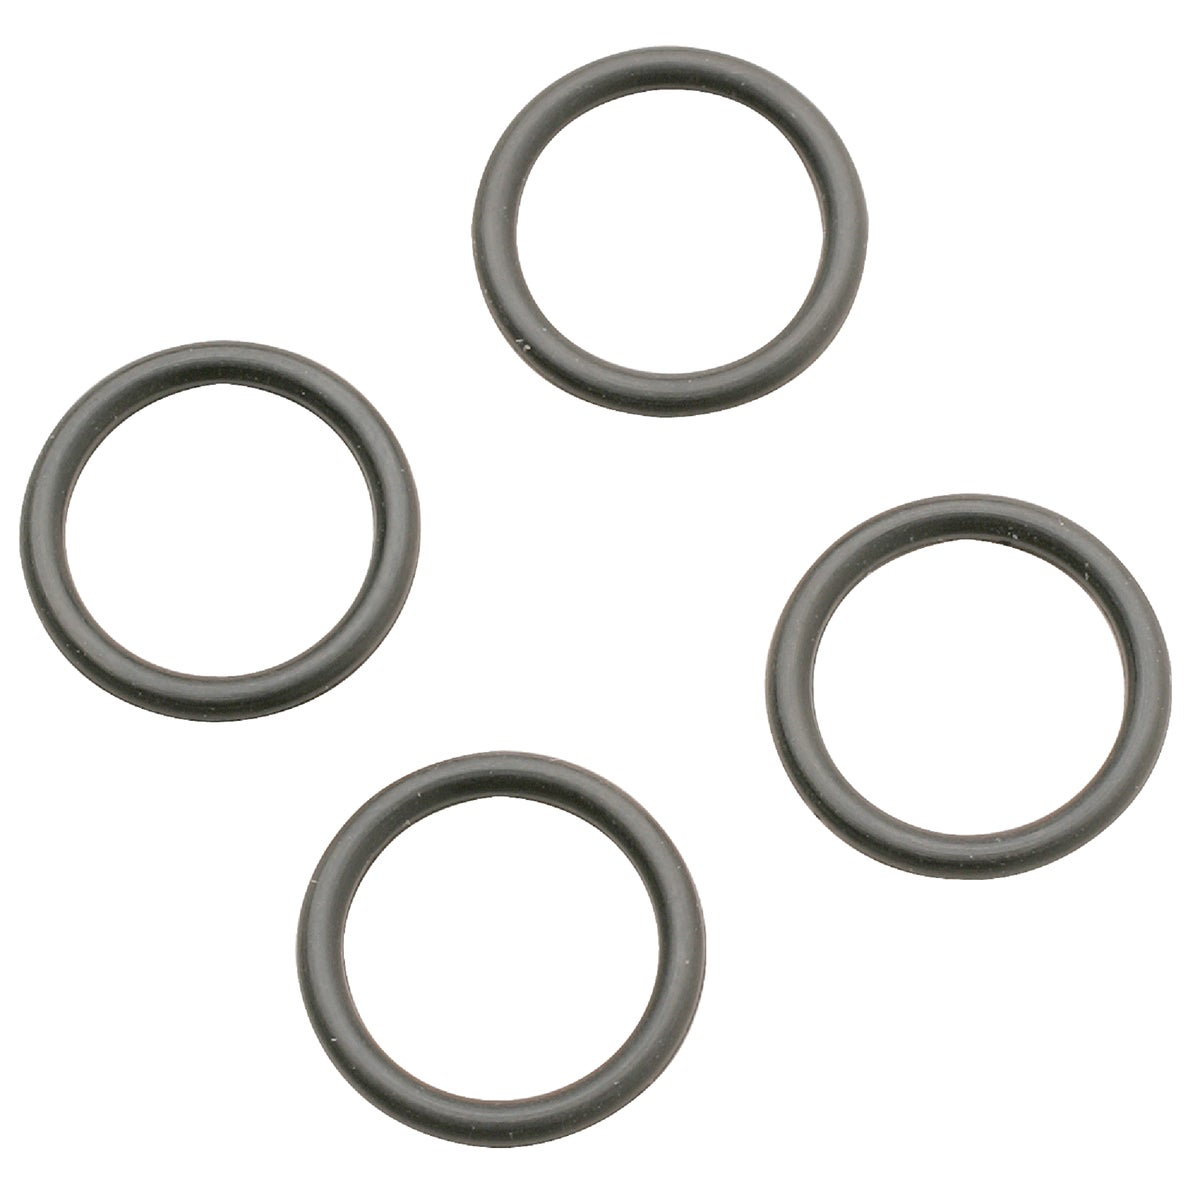 "5/16""ID O-RINGS - 402344 by Plumb Pak/keeney Mfg"